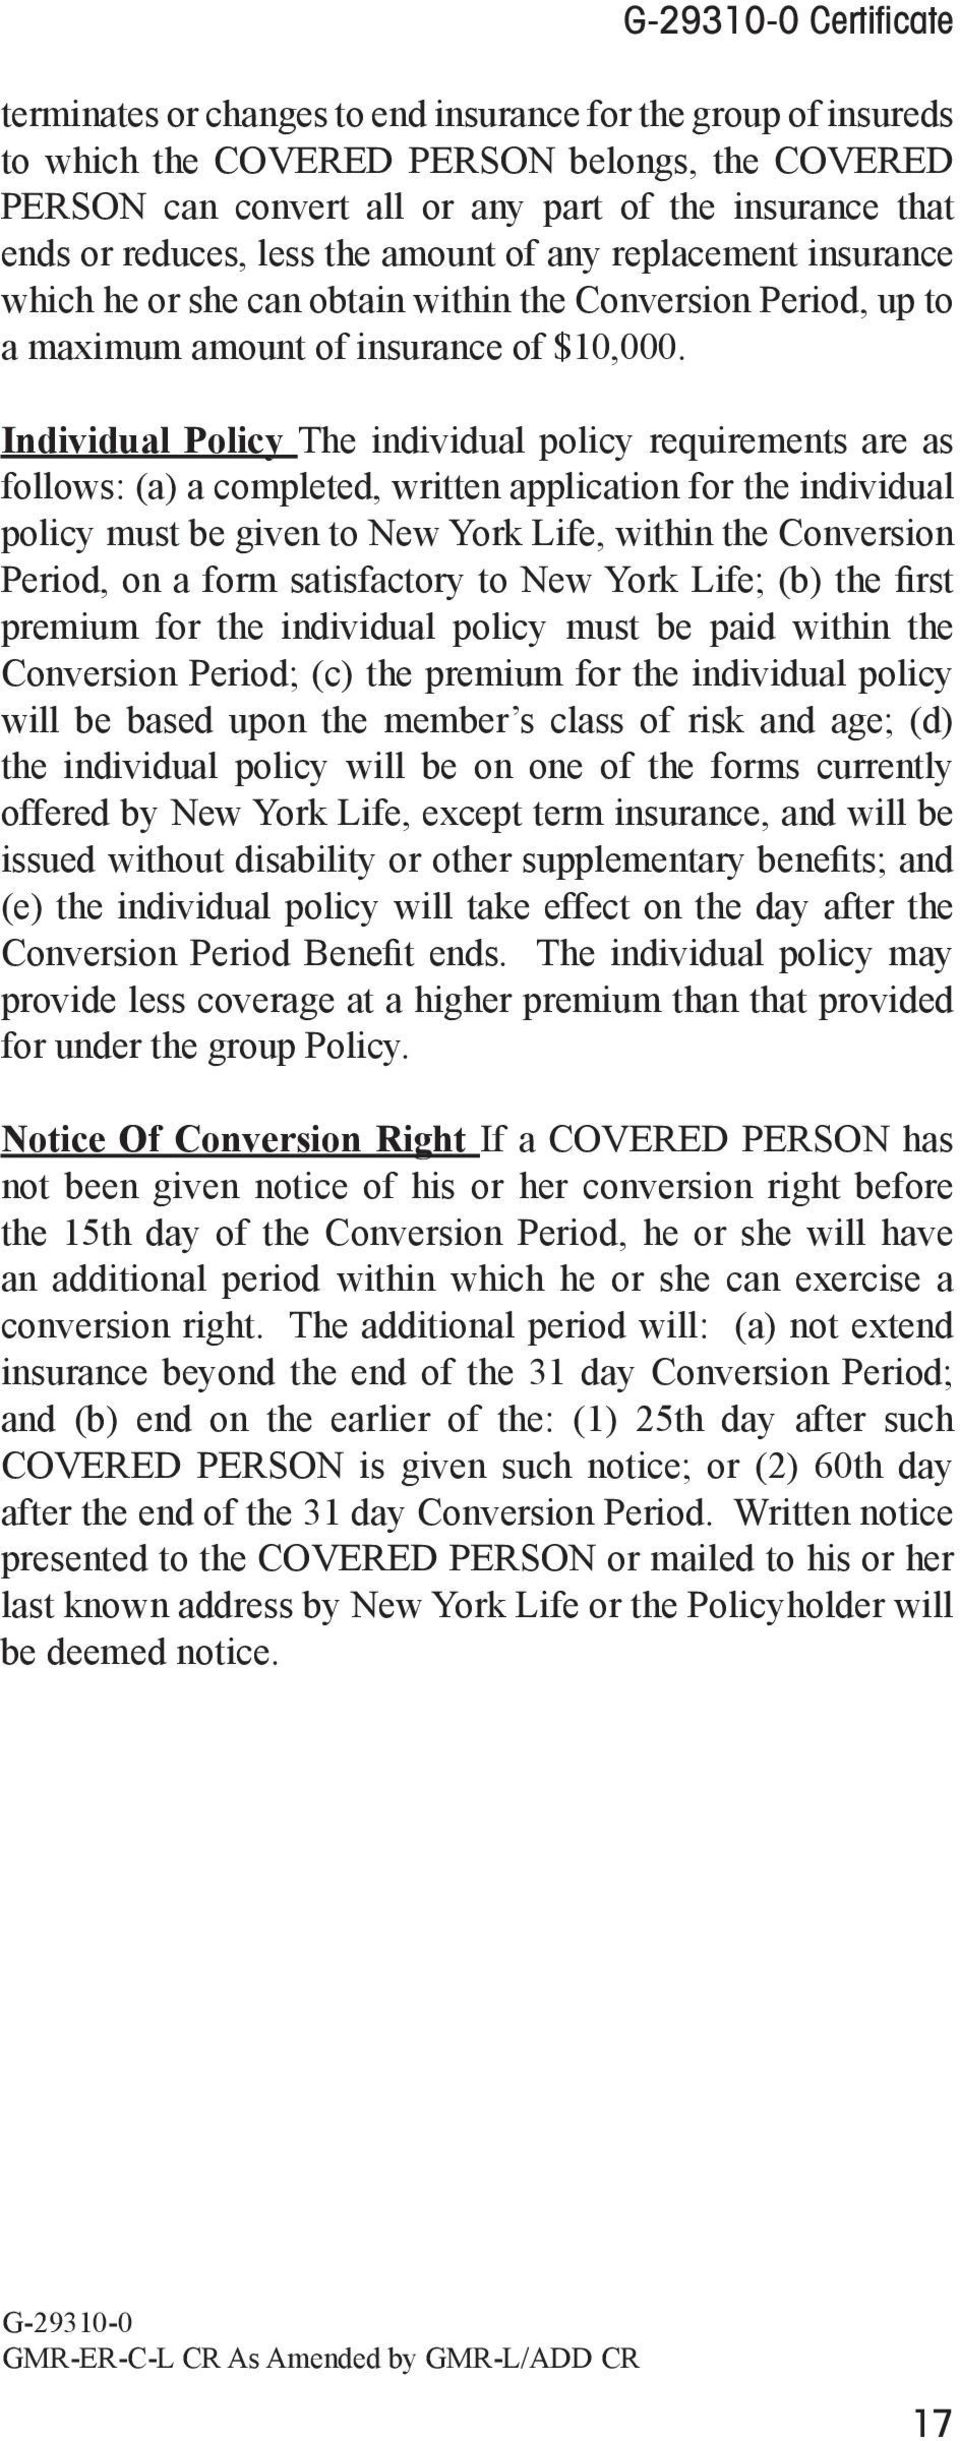 Individual Policy The individual policy requirements are as follows: (a) a completed, written application for the individual policy must be given to New York Life, within the Conversion Period, on a